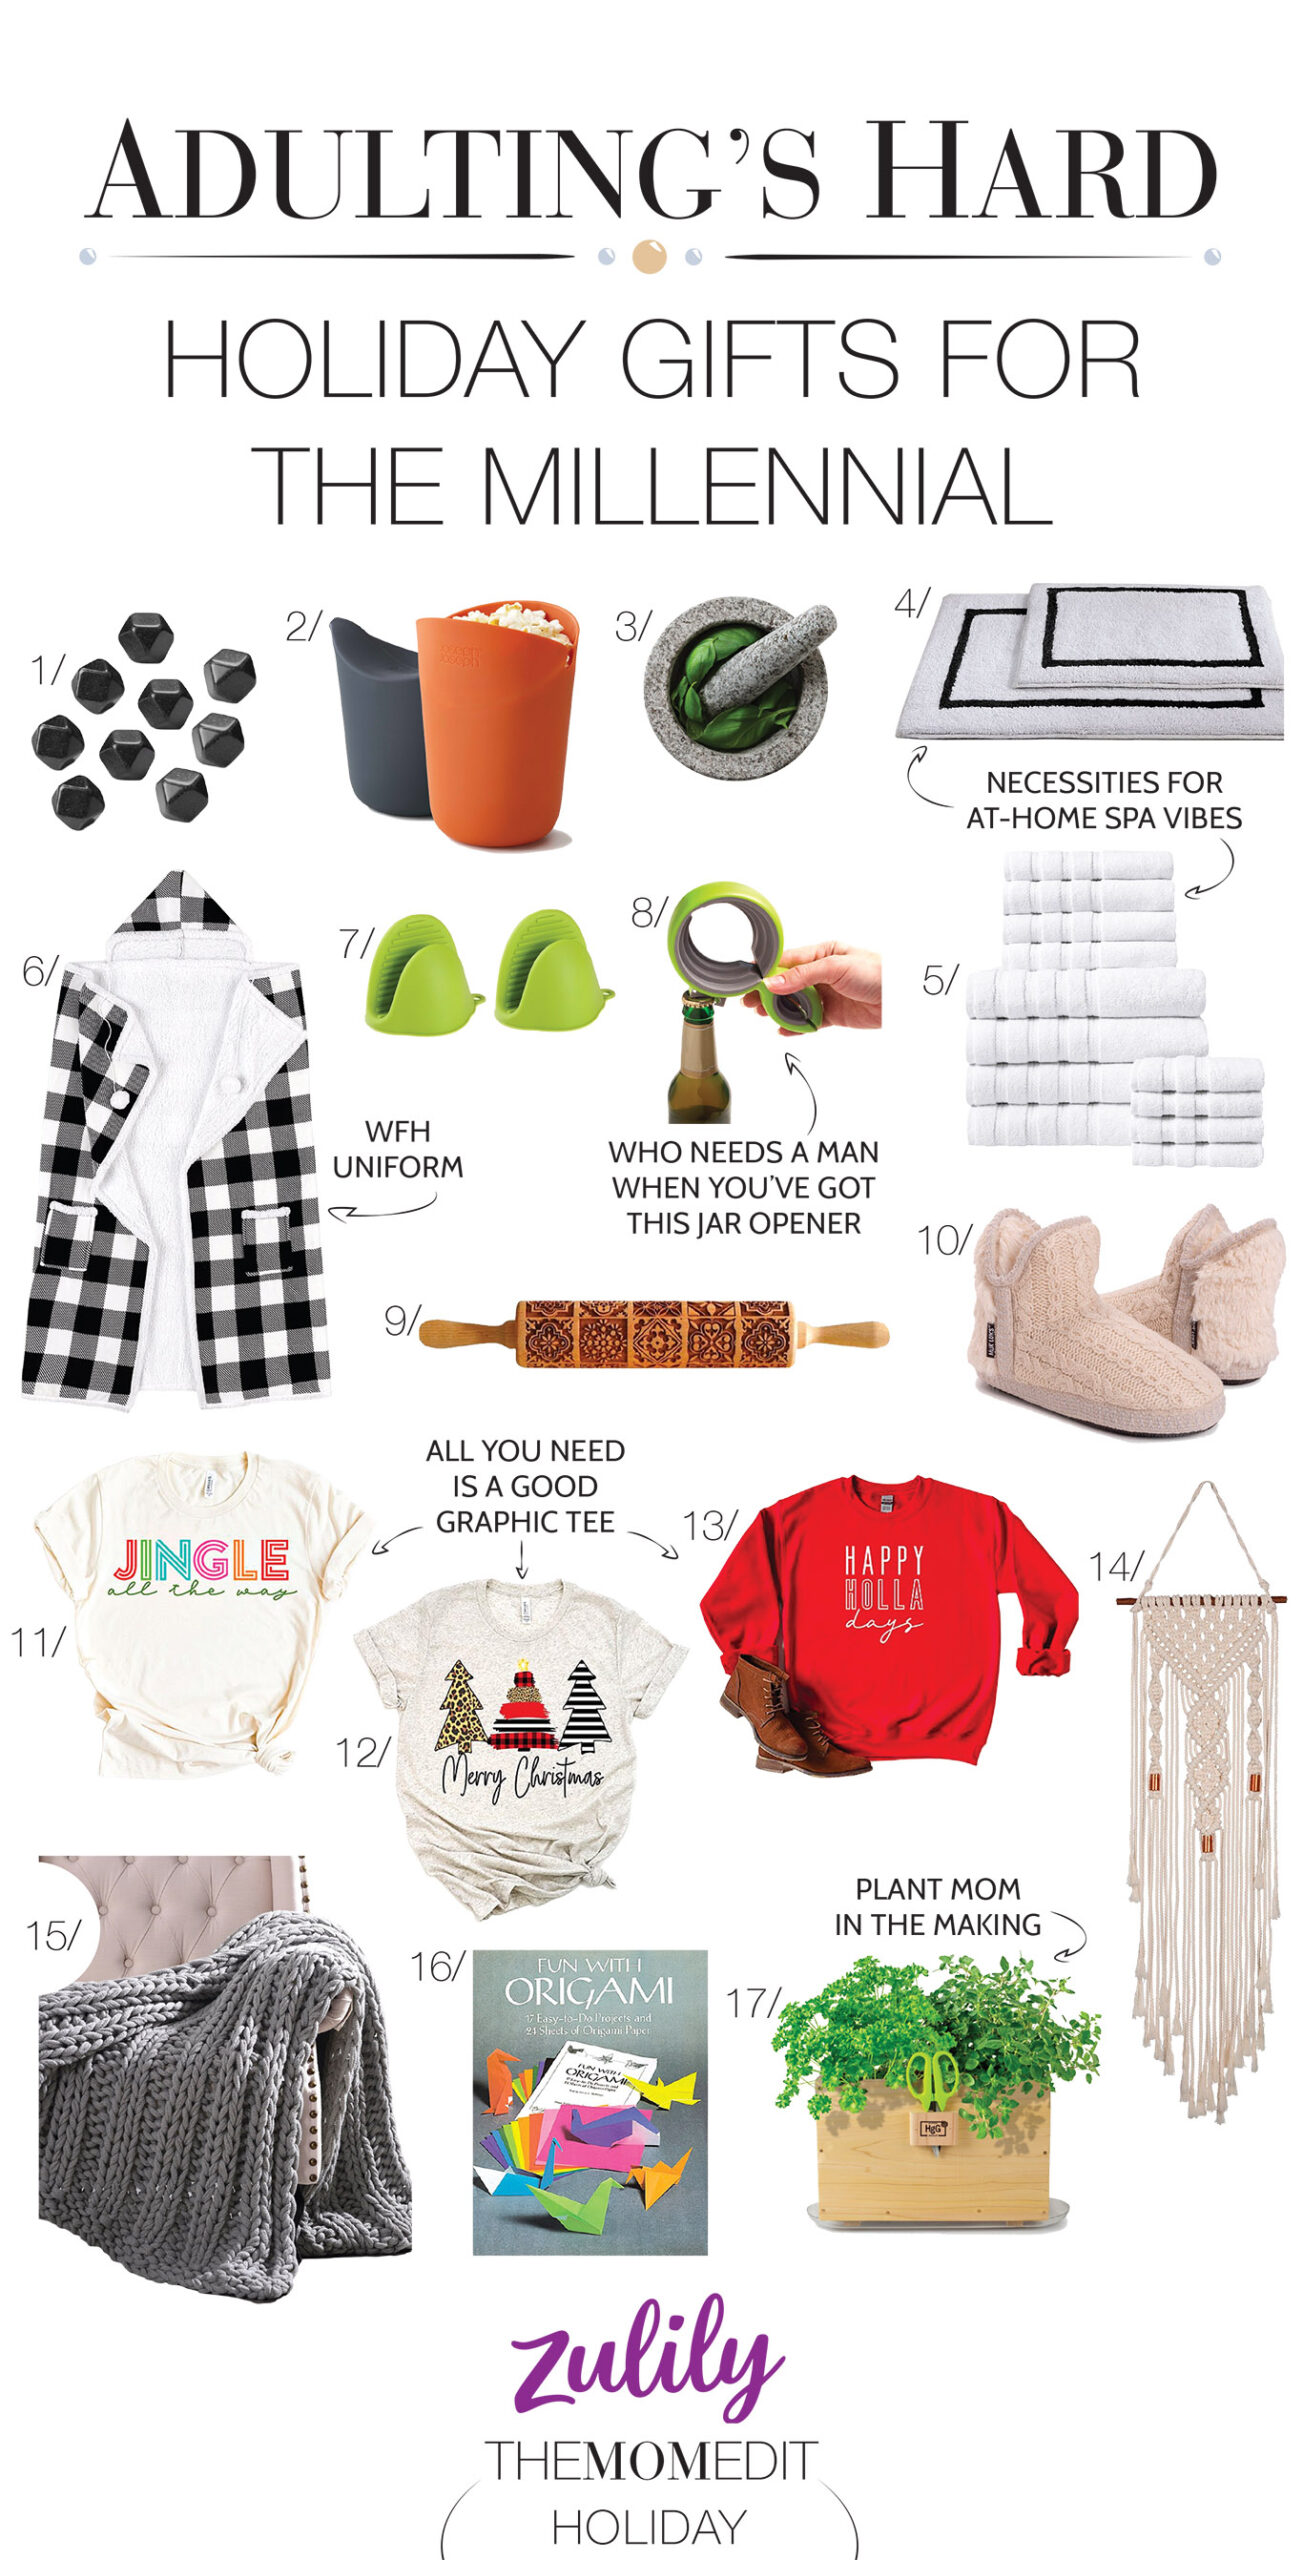 DIY macrame wall hangers, plant boxes & kitchen gadgets. Yup, Zulily's got all the millennial gift ideas in their holiday shop. Fun & done. #addtocart